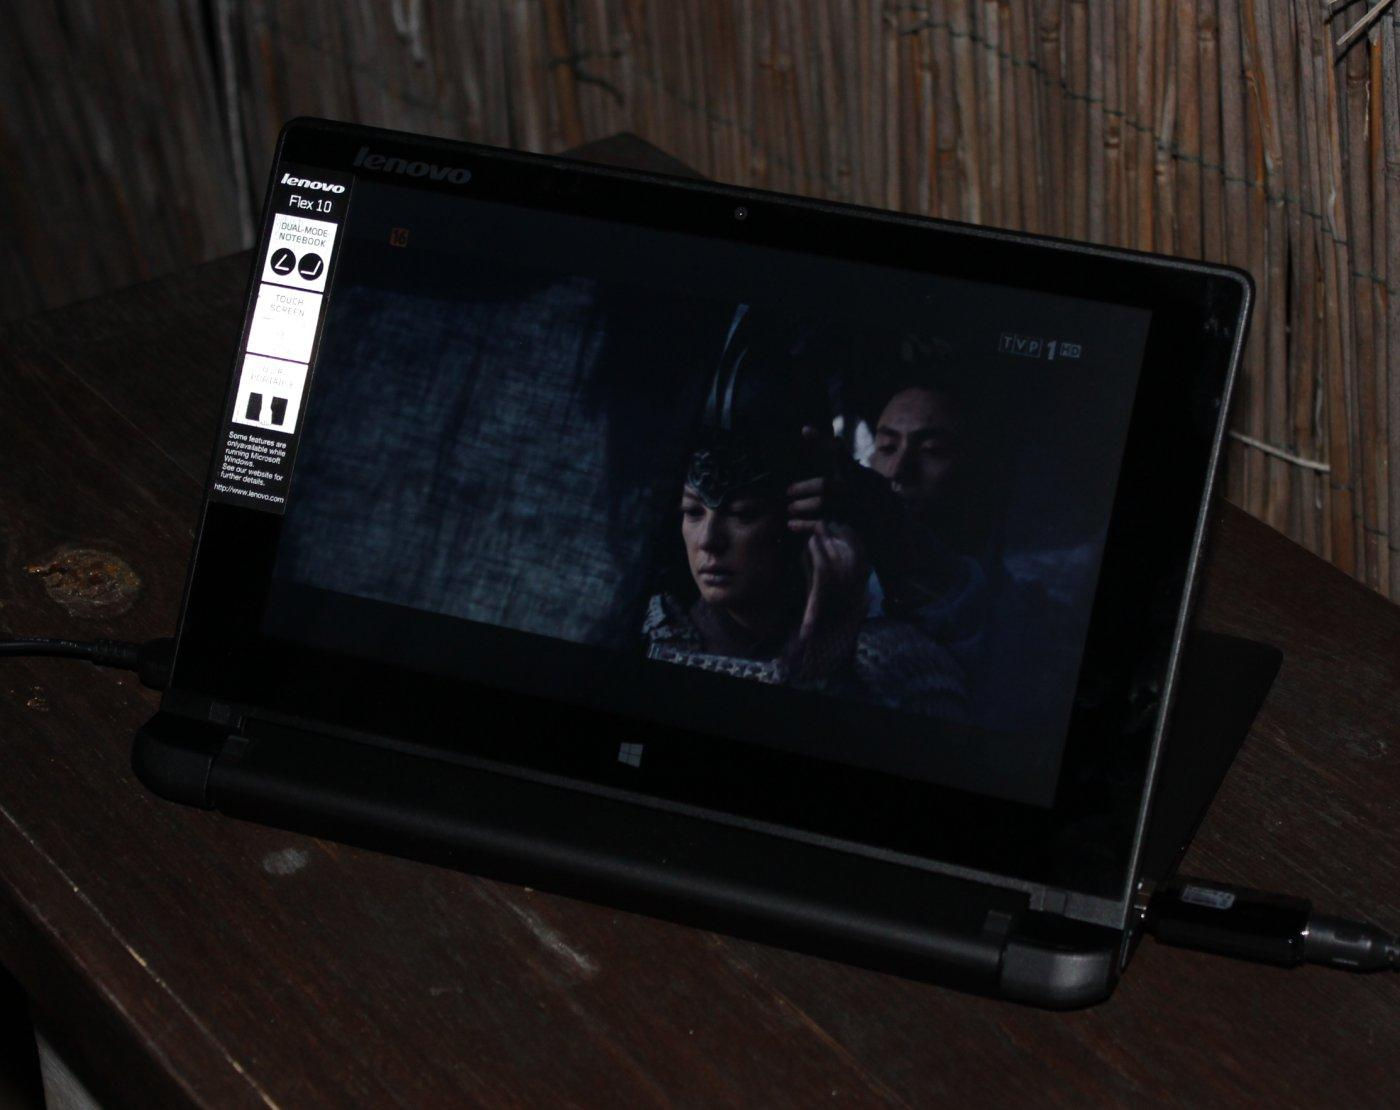 RkBlog :: How cool is Lenovo Flex 10 netbook and how to install